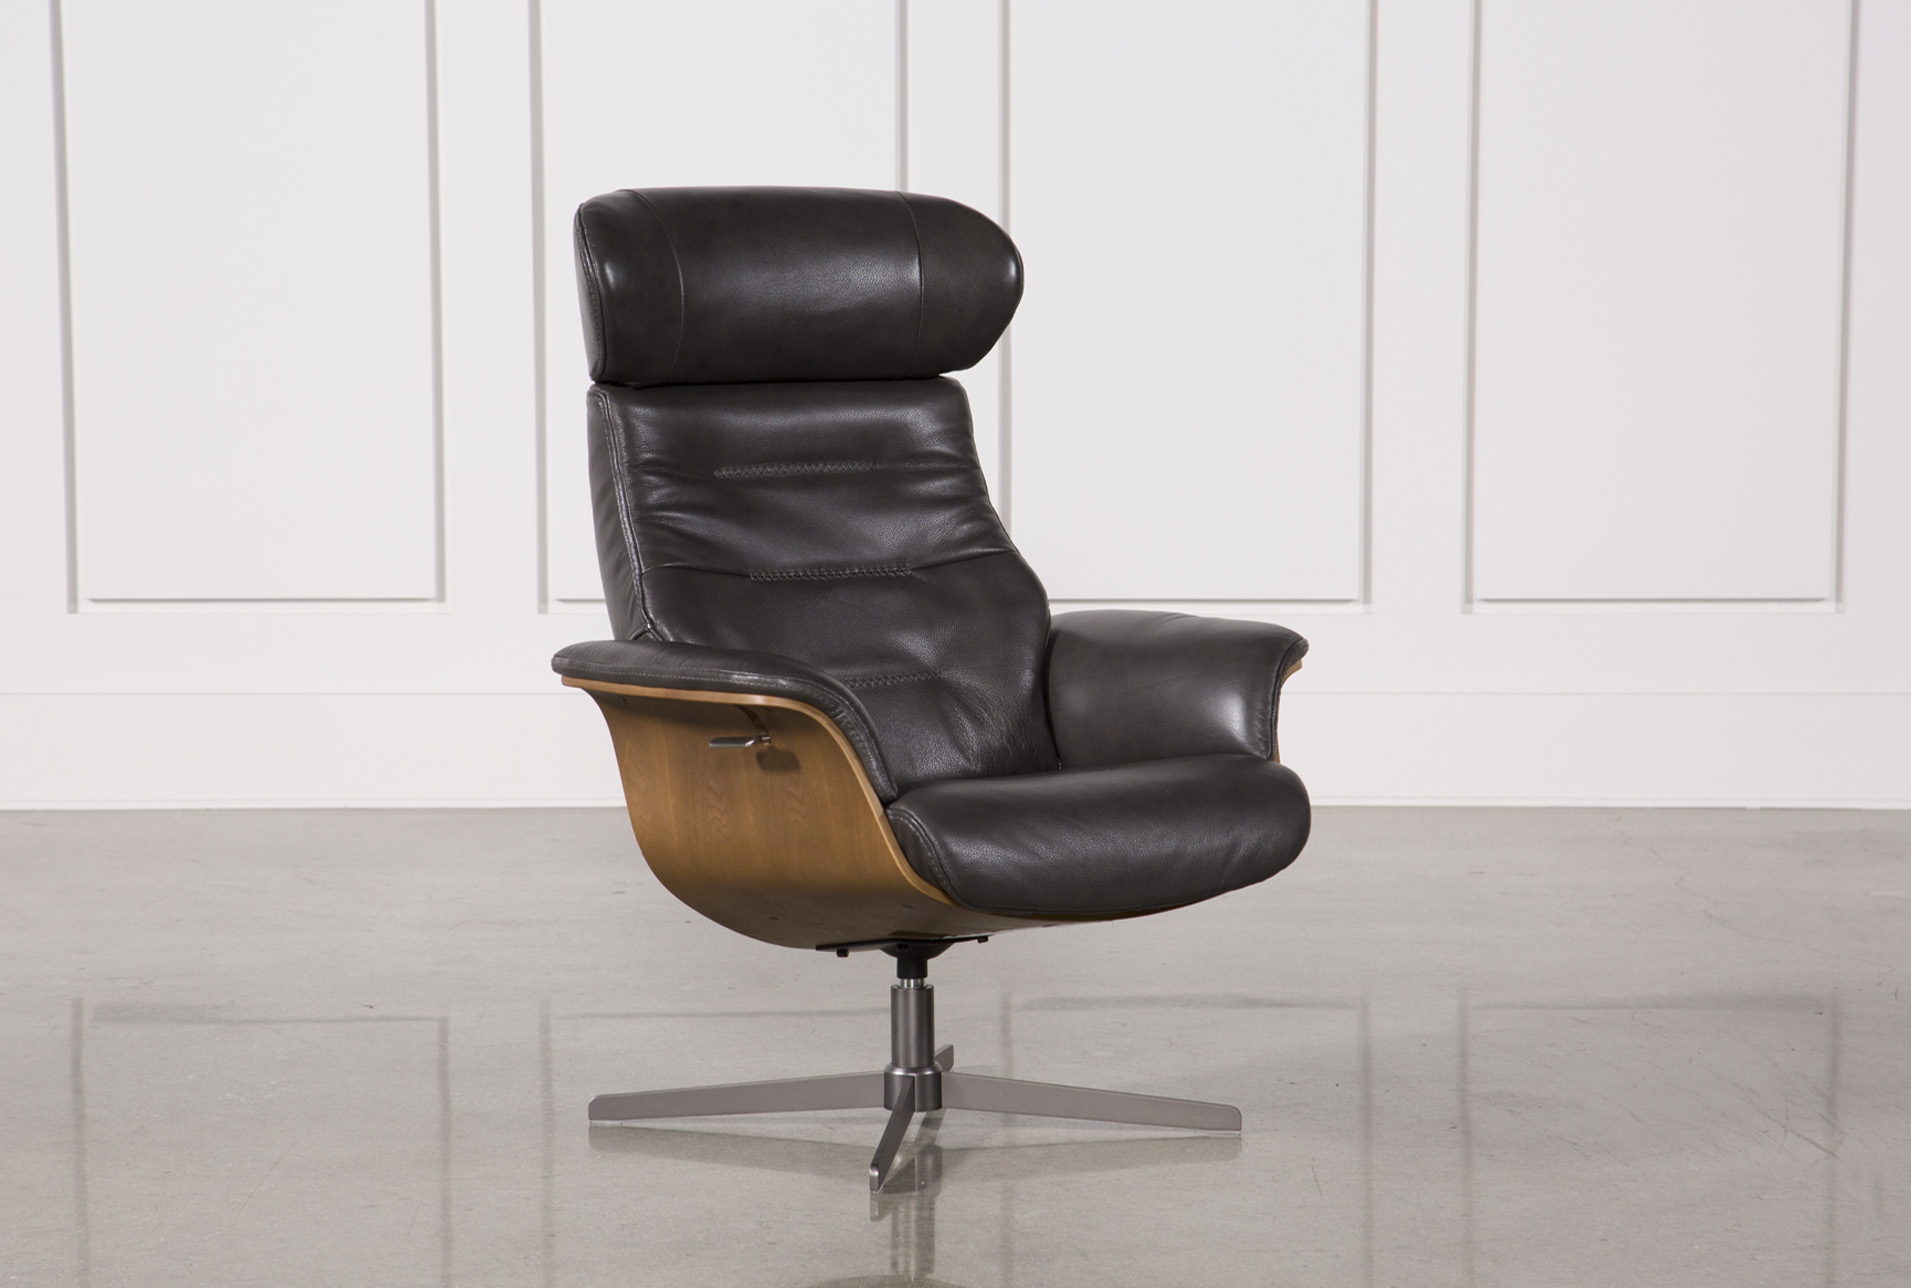 In love with swivel chairs?   here are three you can choose from!